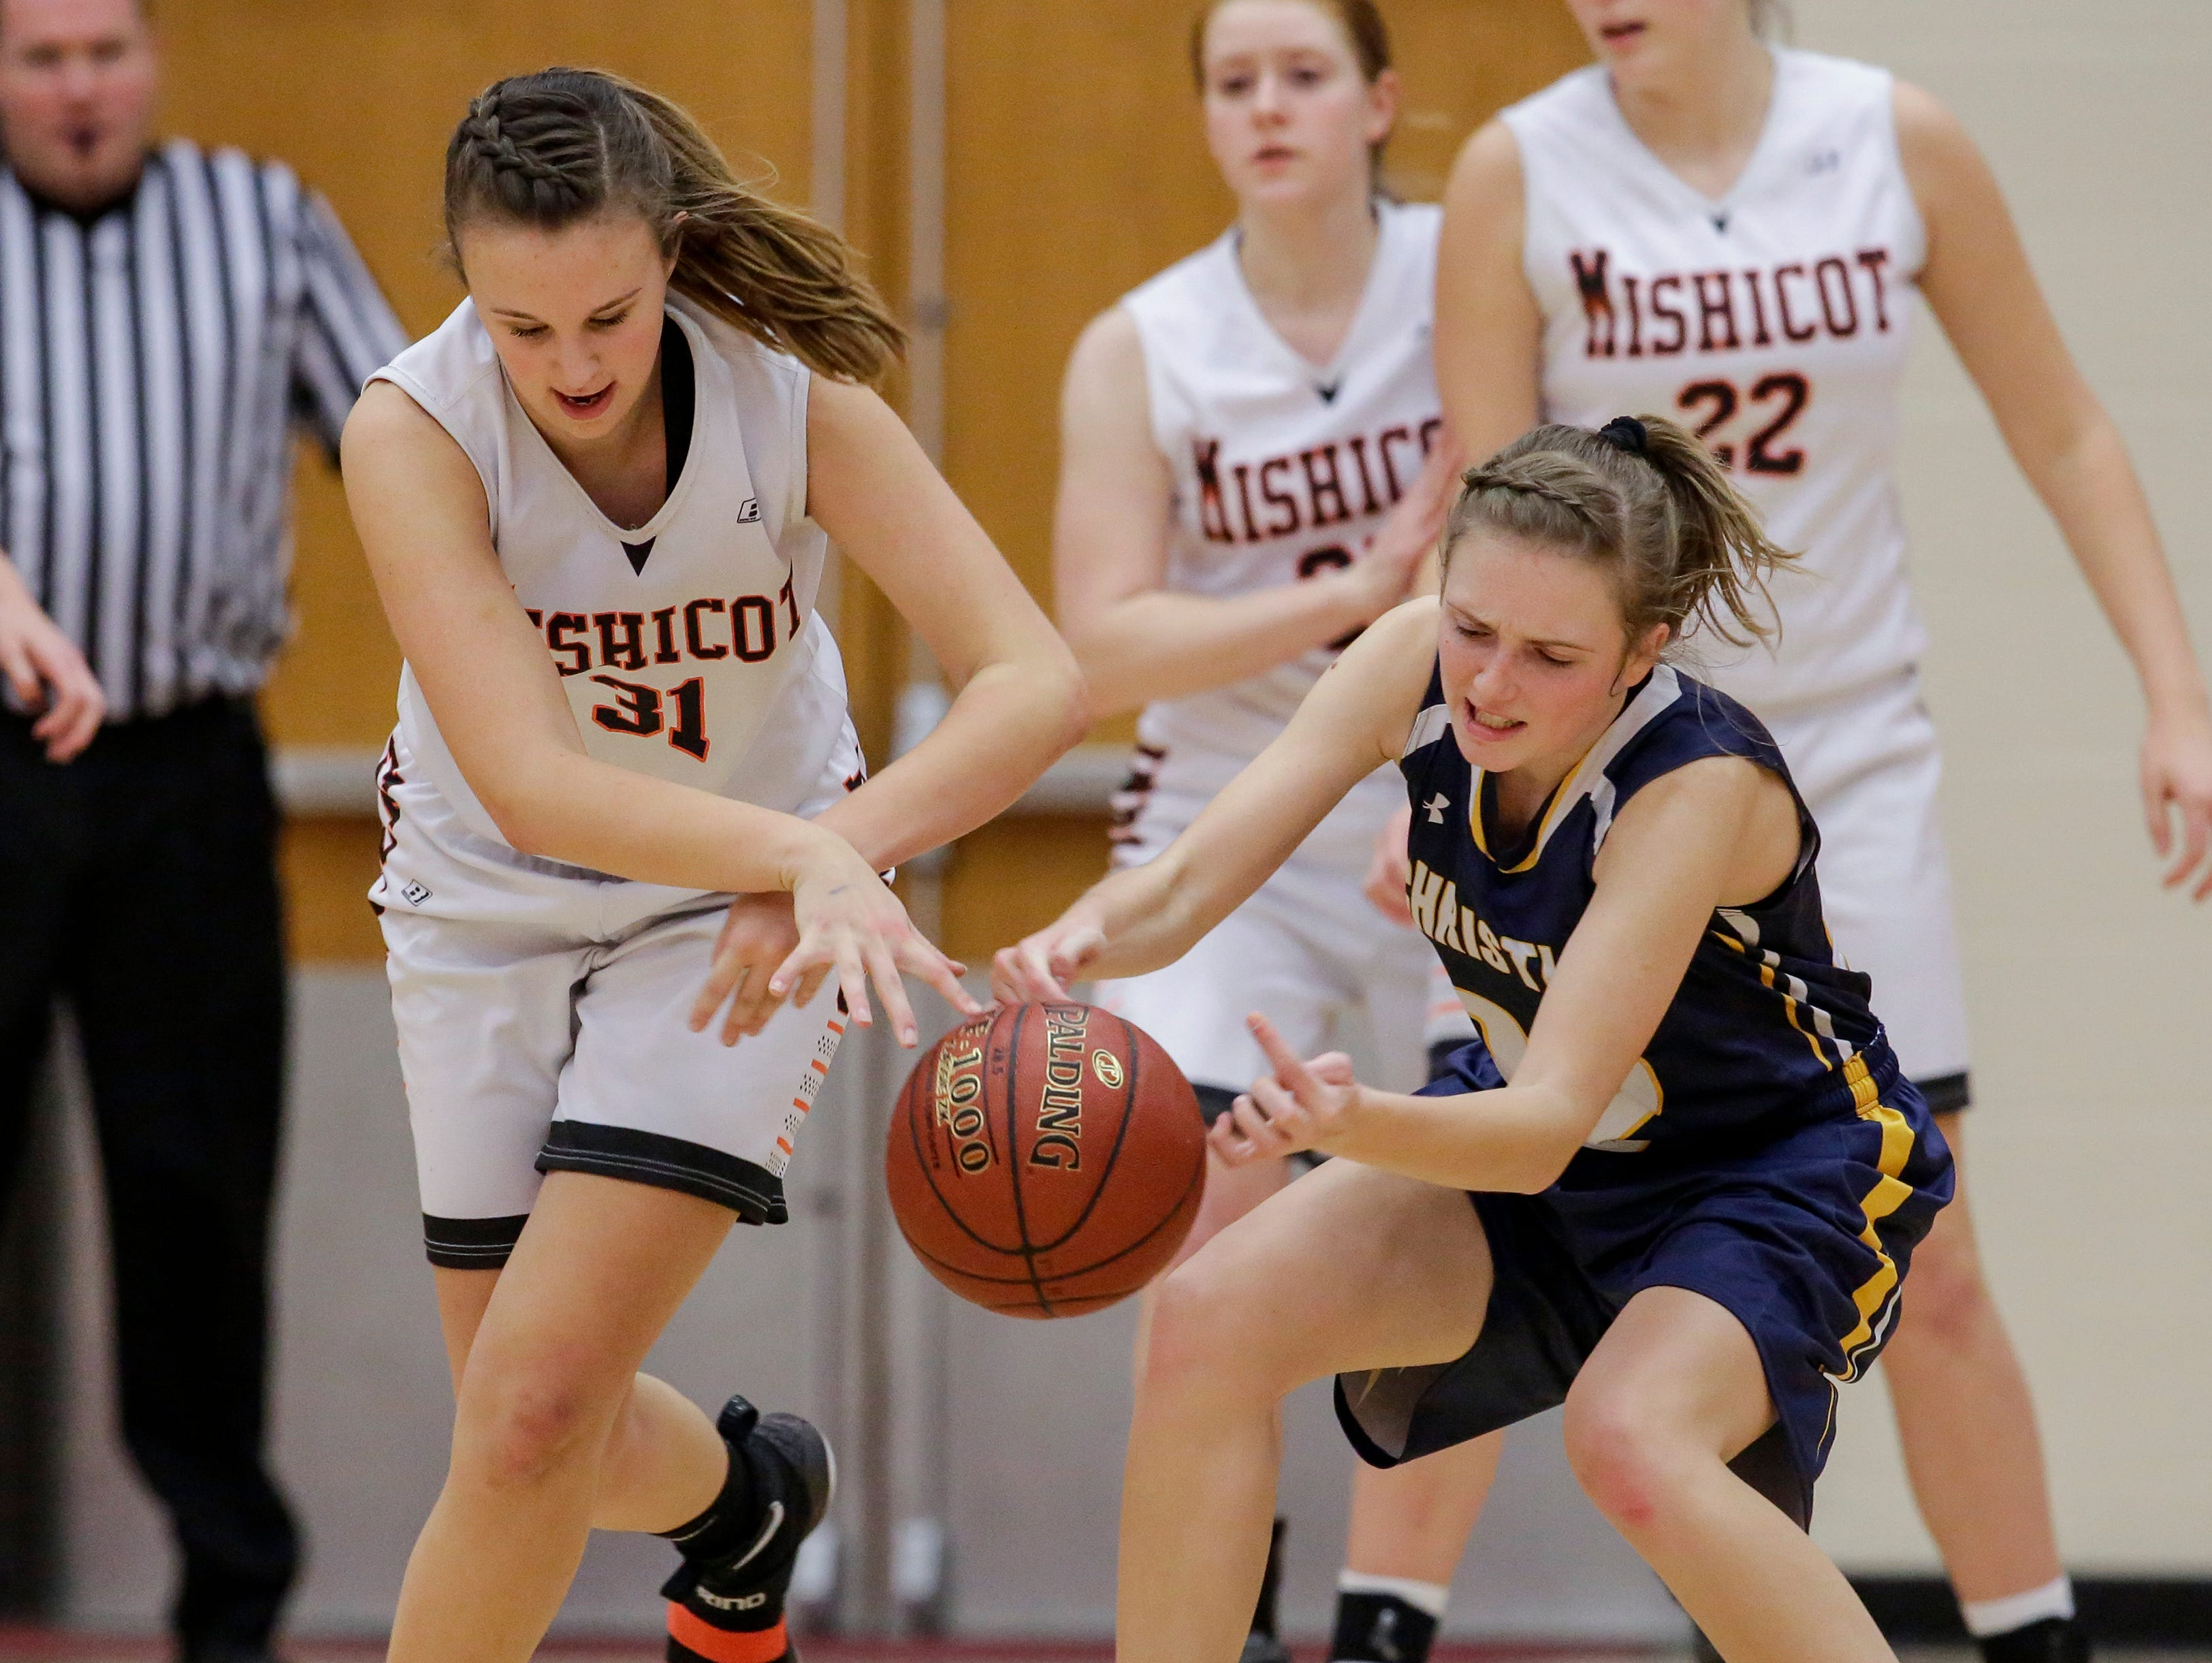 Mishicot's Kylie Schmidt (31) makes a steal against Sheboygan Christian at Mishicot High School Thursday, Jan. 18, 2018, in Mishicot, Wis. Josh Clark/USA TODAY NETWORK-Wisconsin